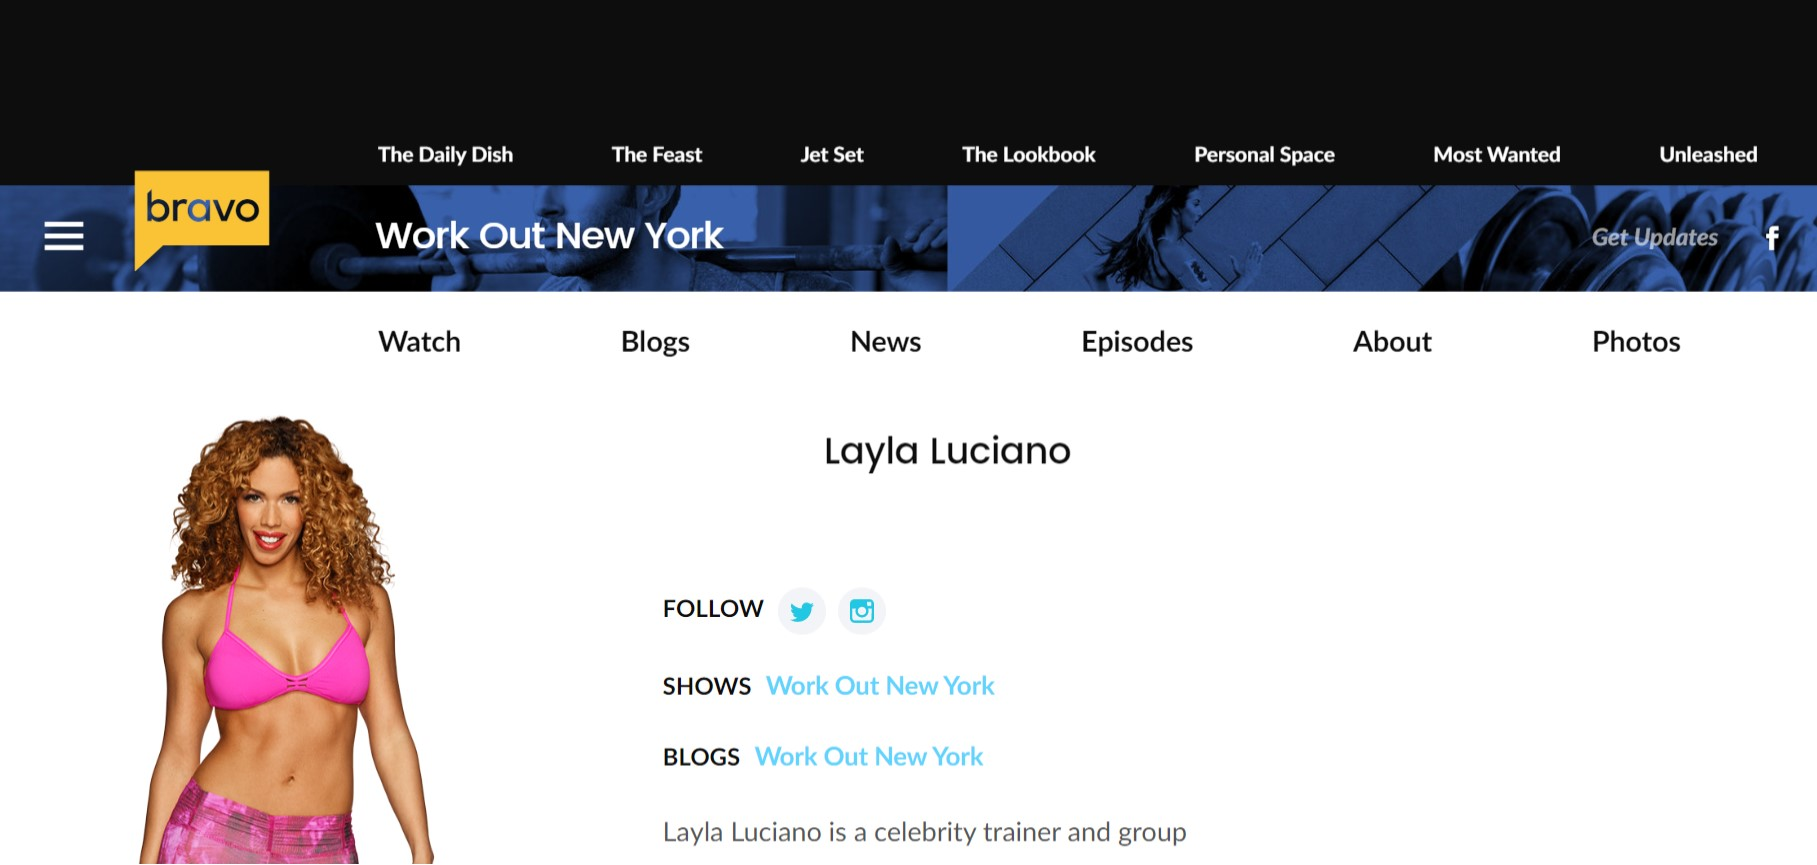 BravoTV Workout New York - Layla Luciano Star of Bravo TV's Workout New York